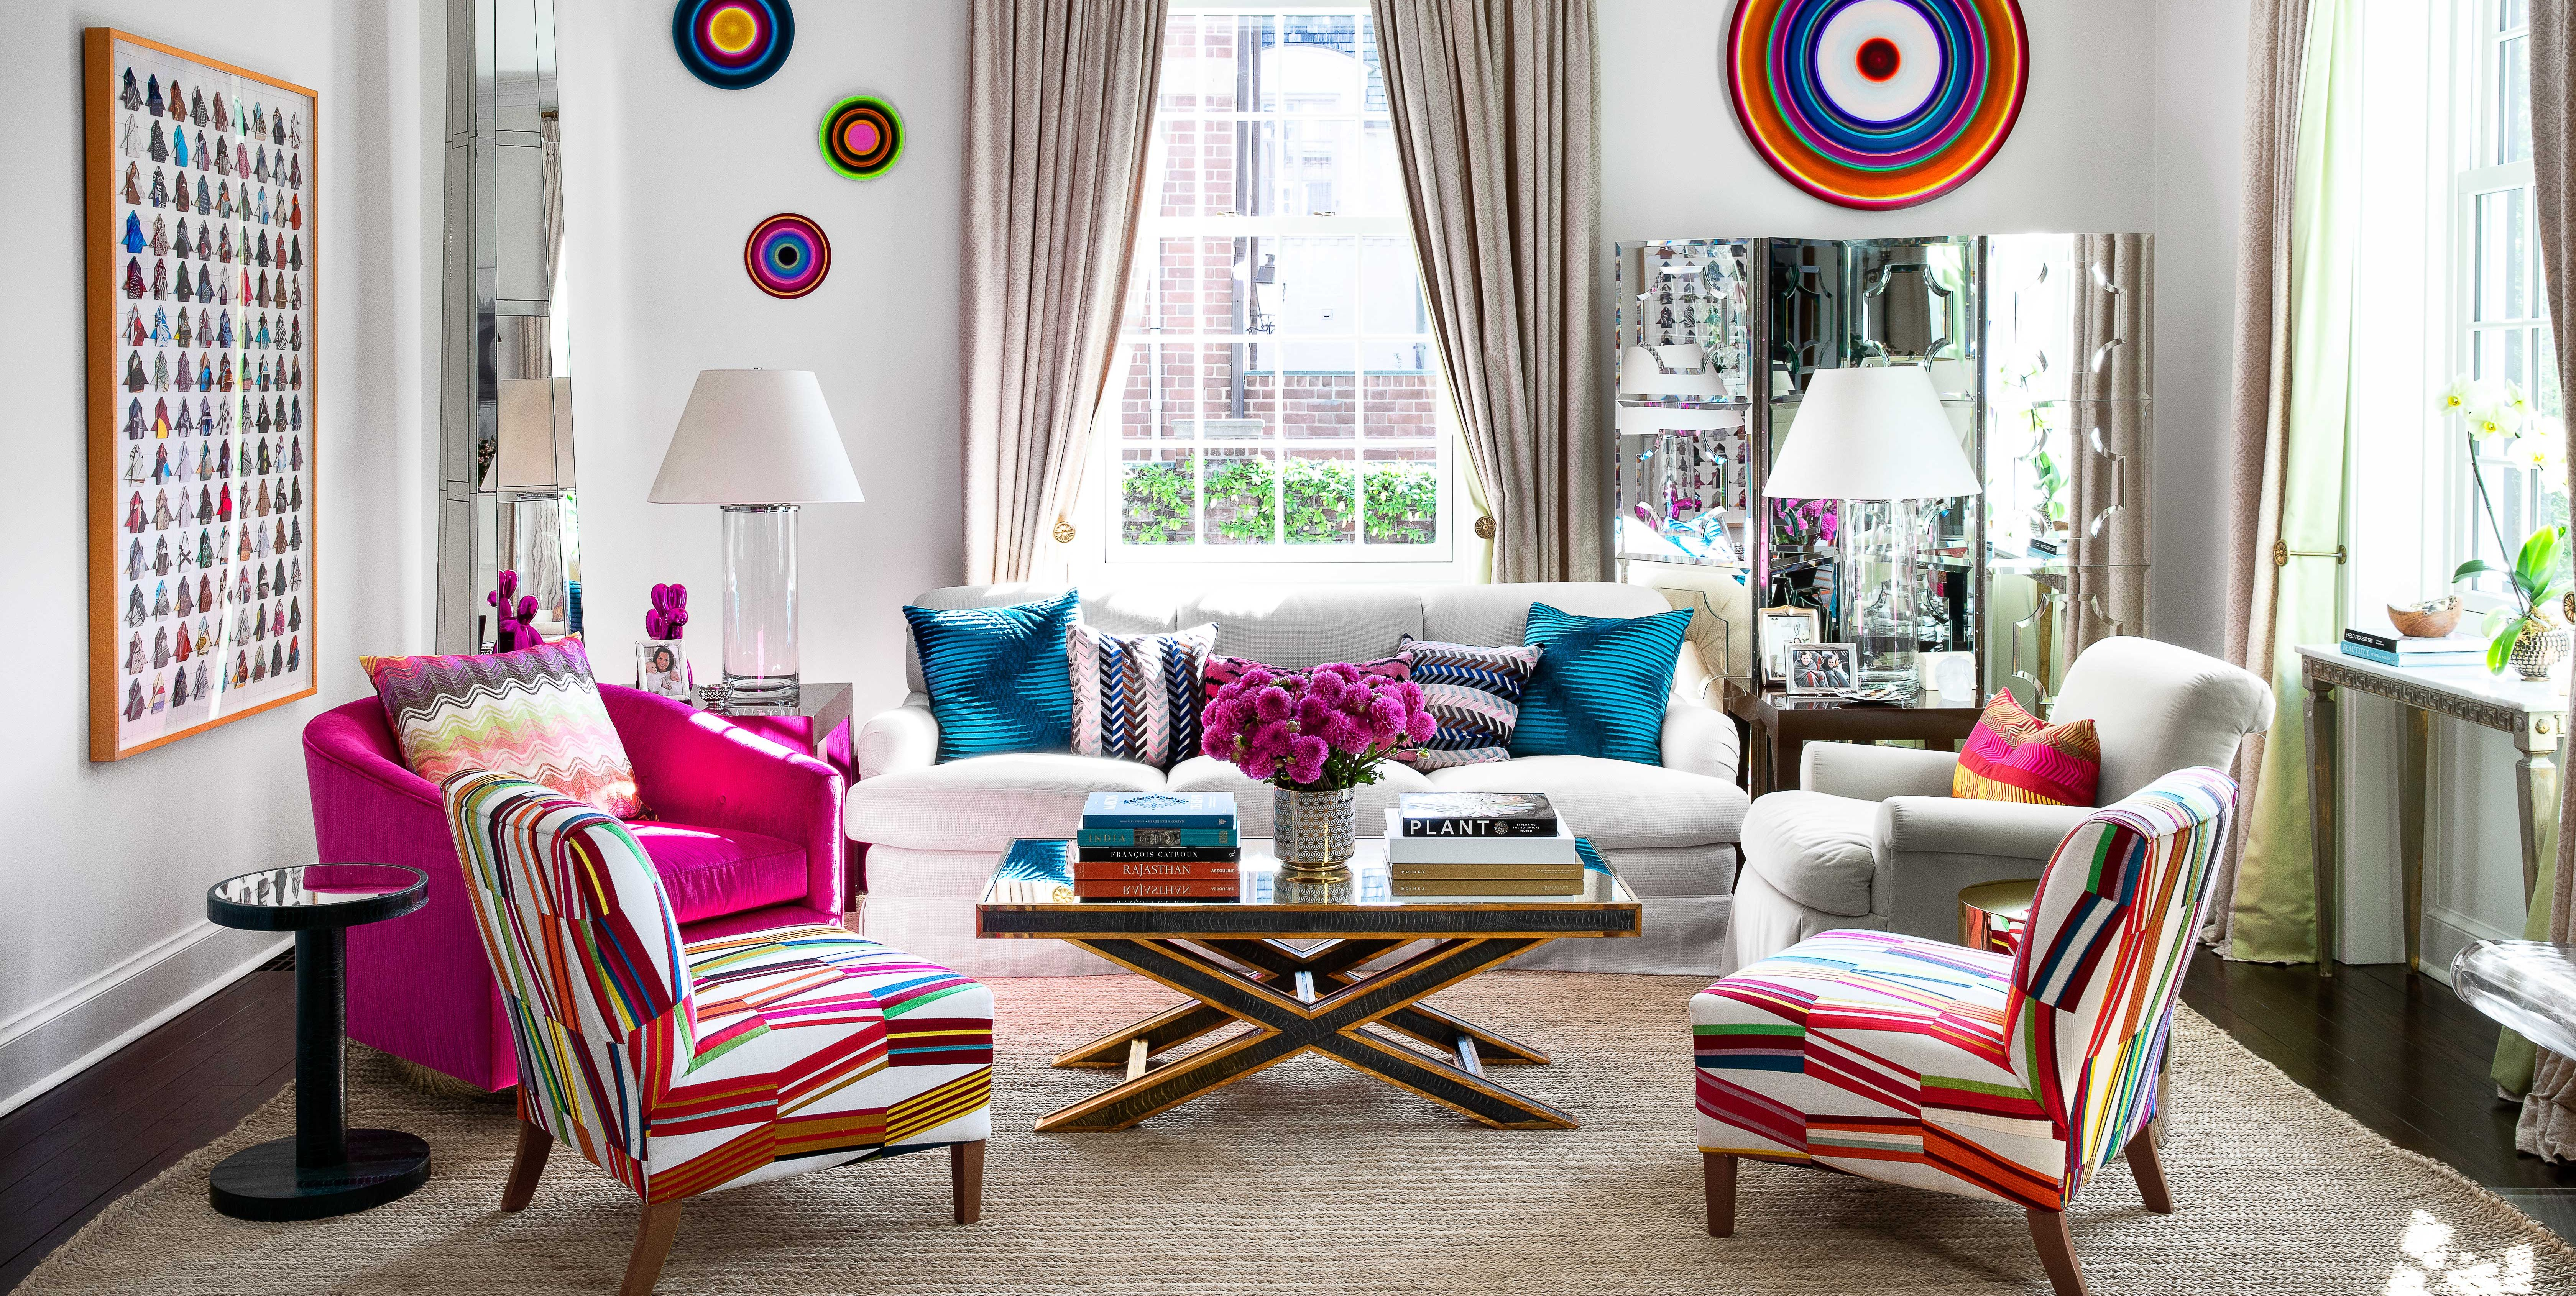 10 Stylish Rugs That Will Actually Hide Stains, Because Life Happens